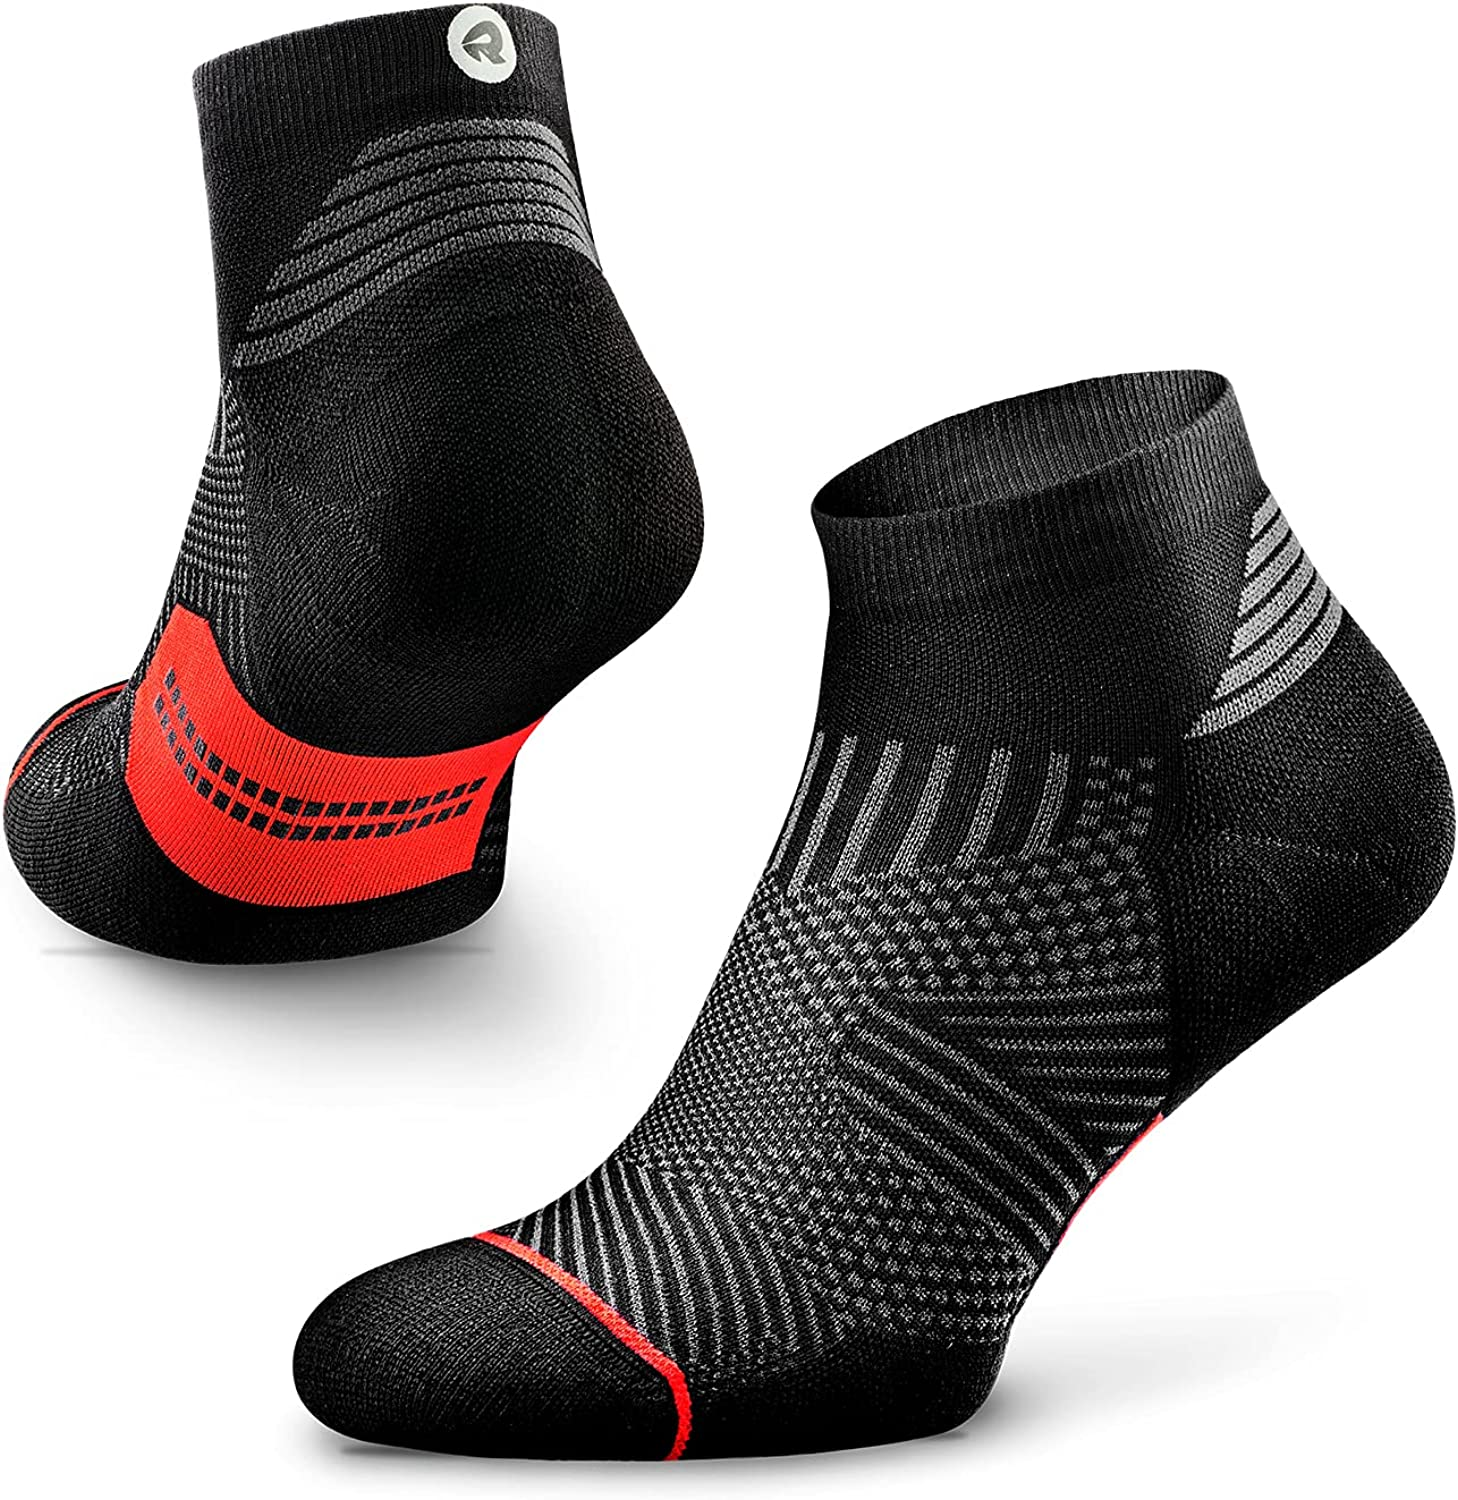 Rockay Max Cushion Flare Running Socks for Men and Women, Quarter Cut, Arch Support, 100% Recycled, Anti-Odor